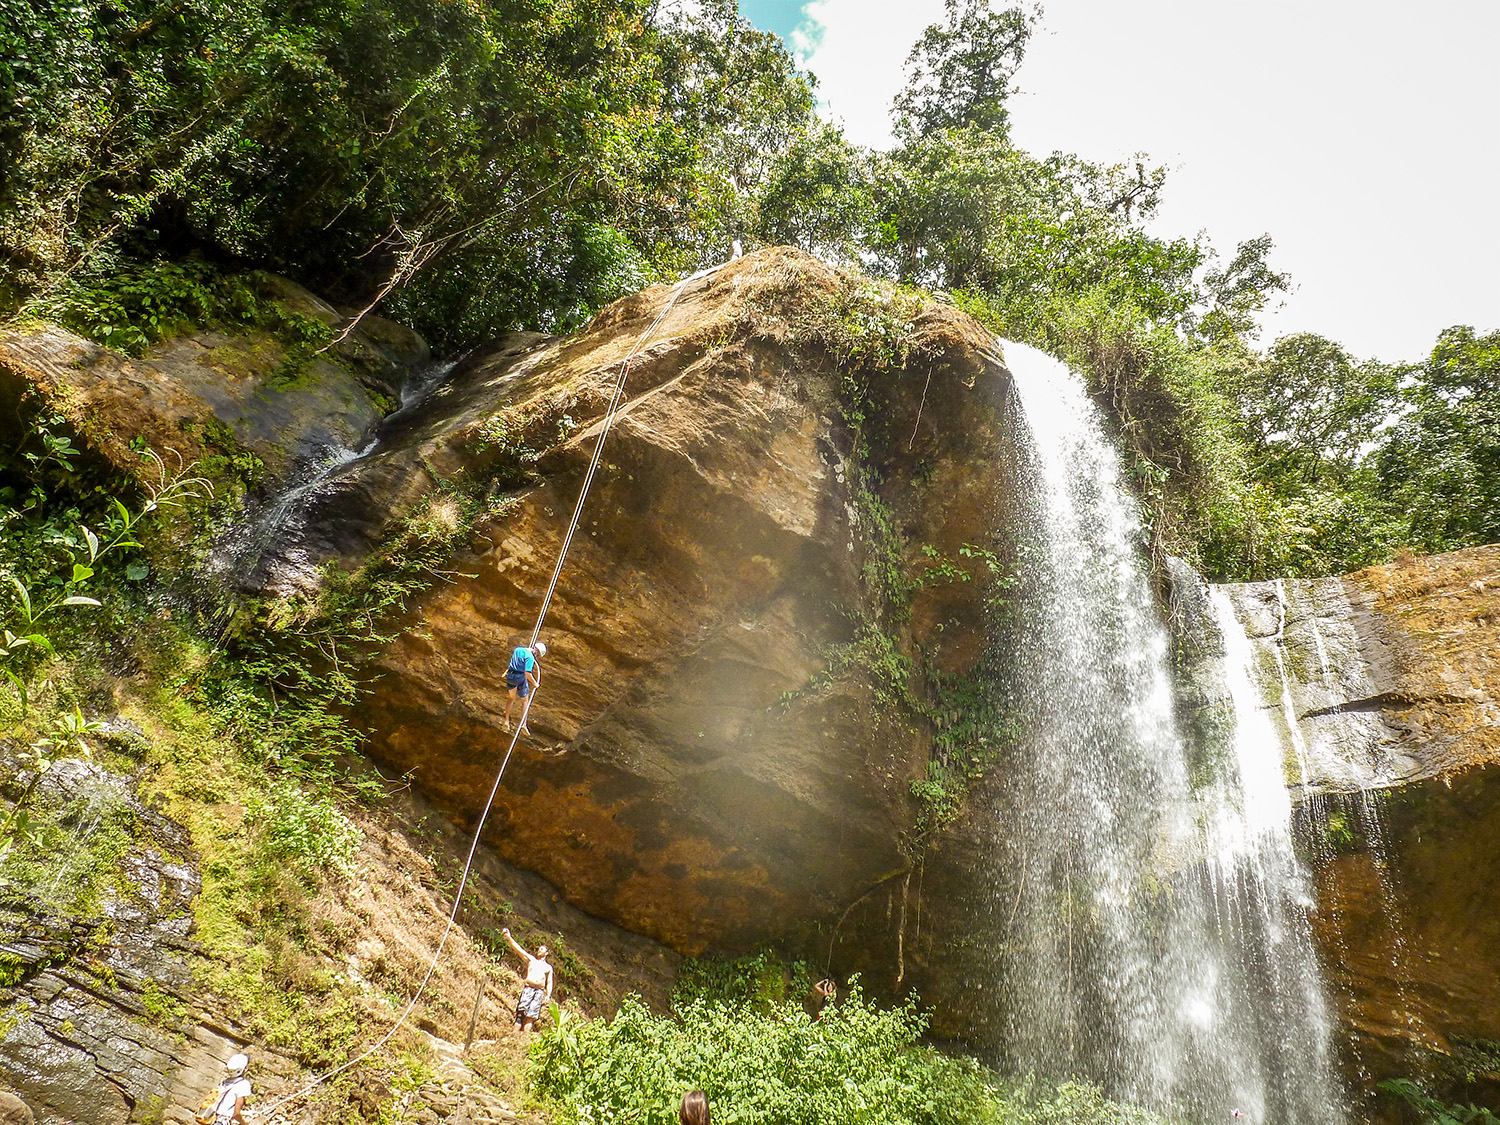 Hikers rappel off a waterfall in Costa Rica.Photo by Stacey McKenna.